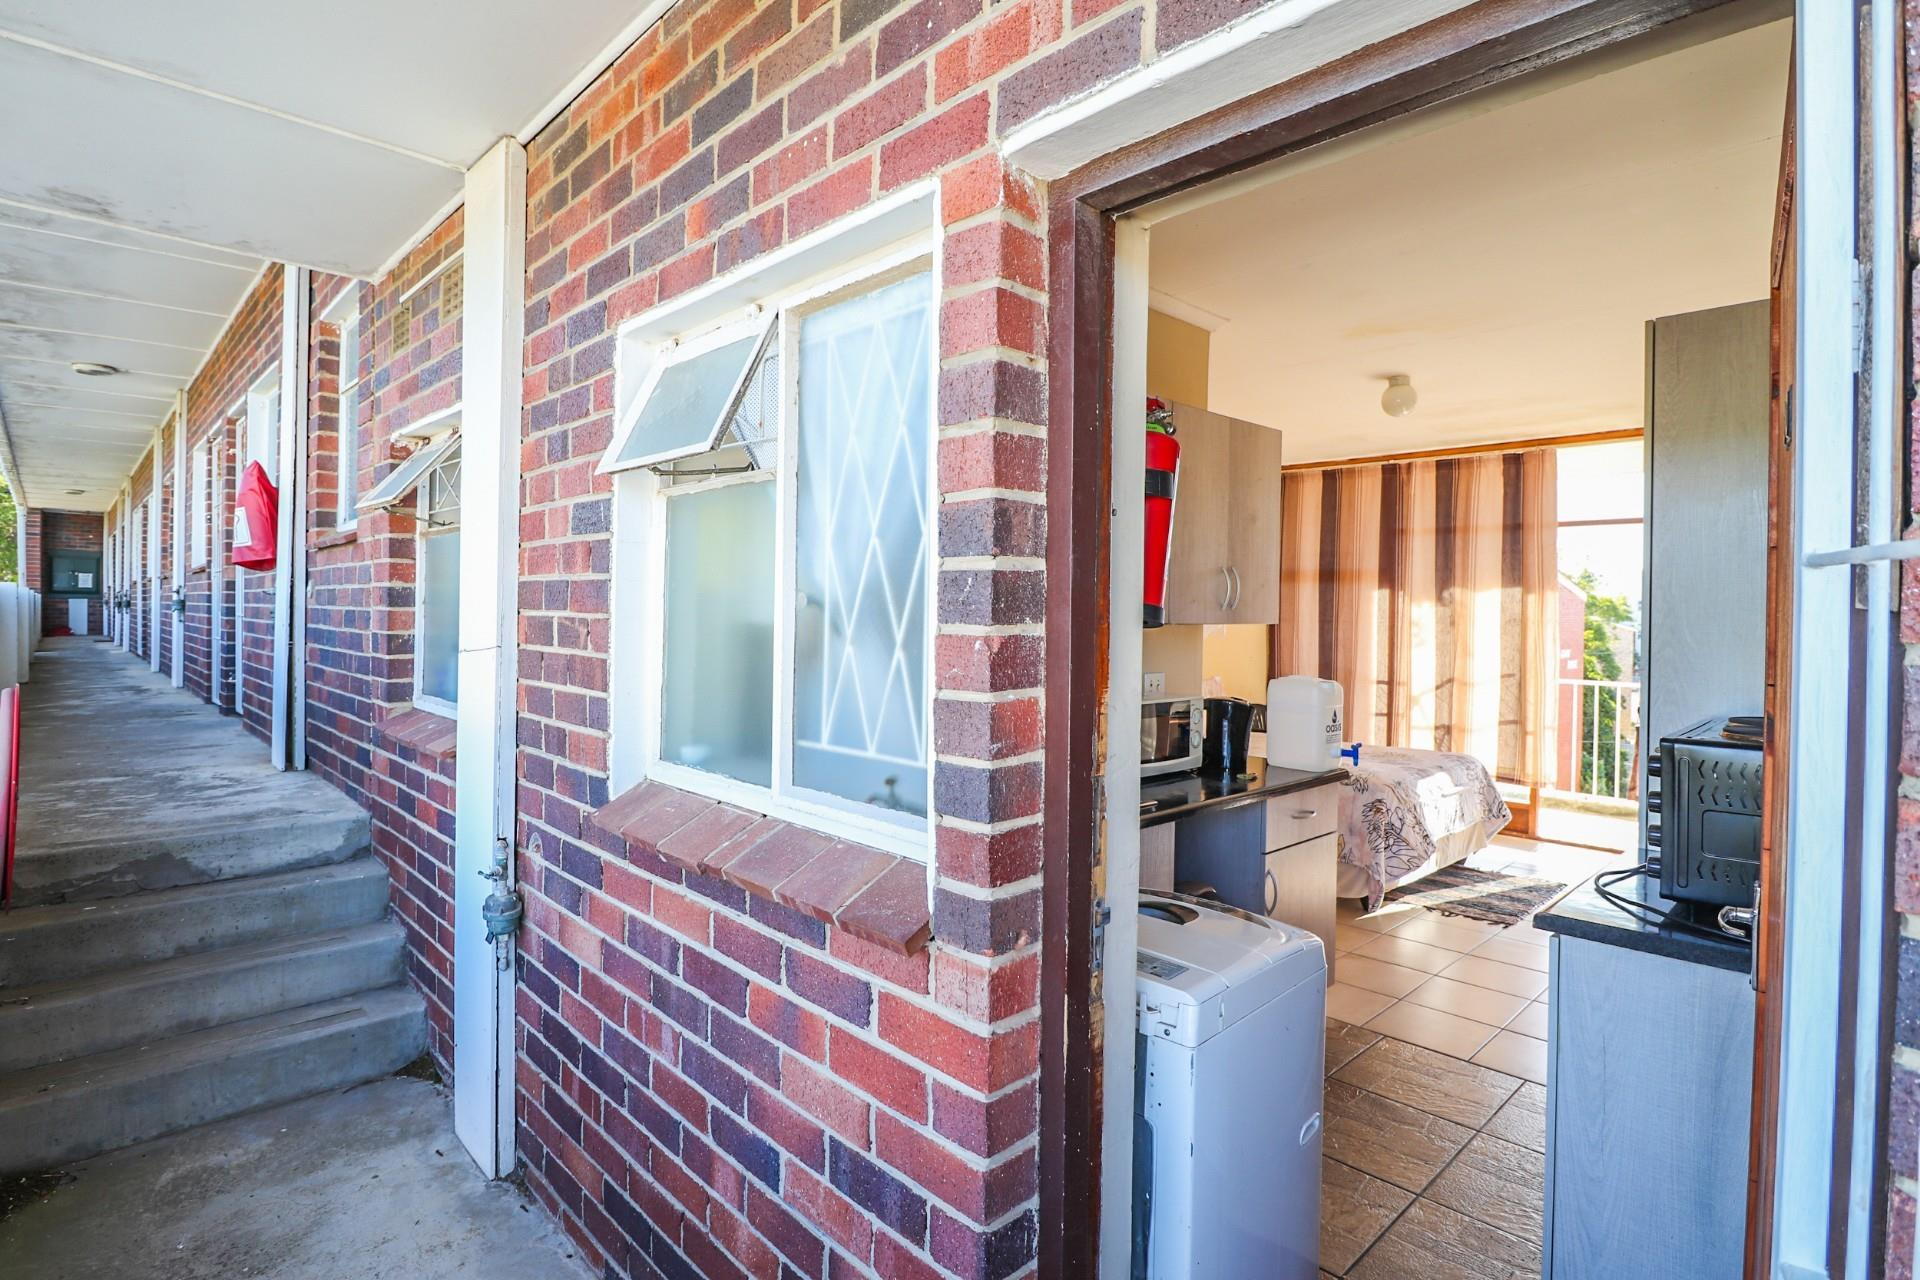 1 Bedroom Apartment / Flat For Sale in Grahamstown Central